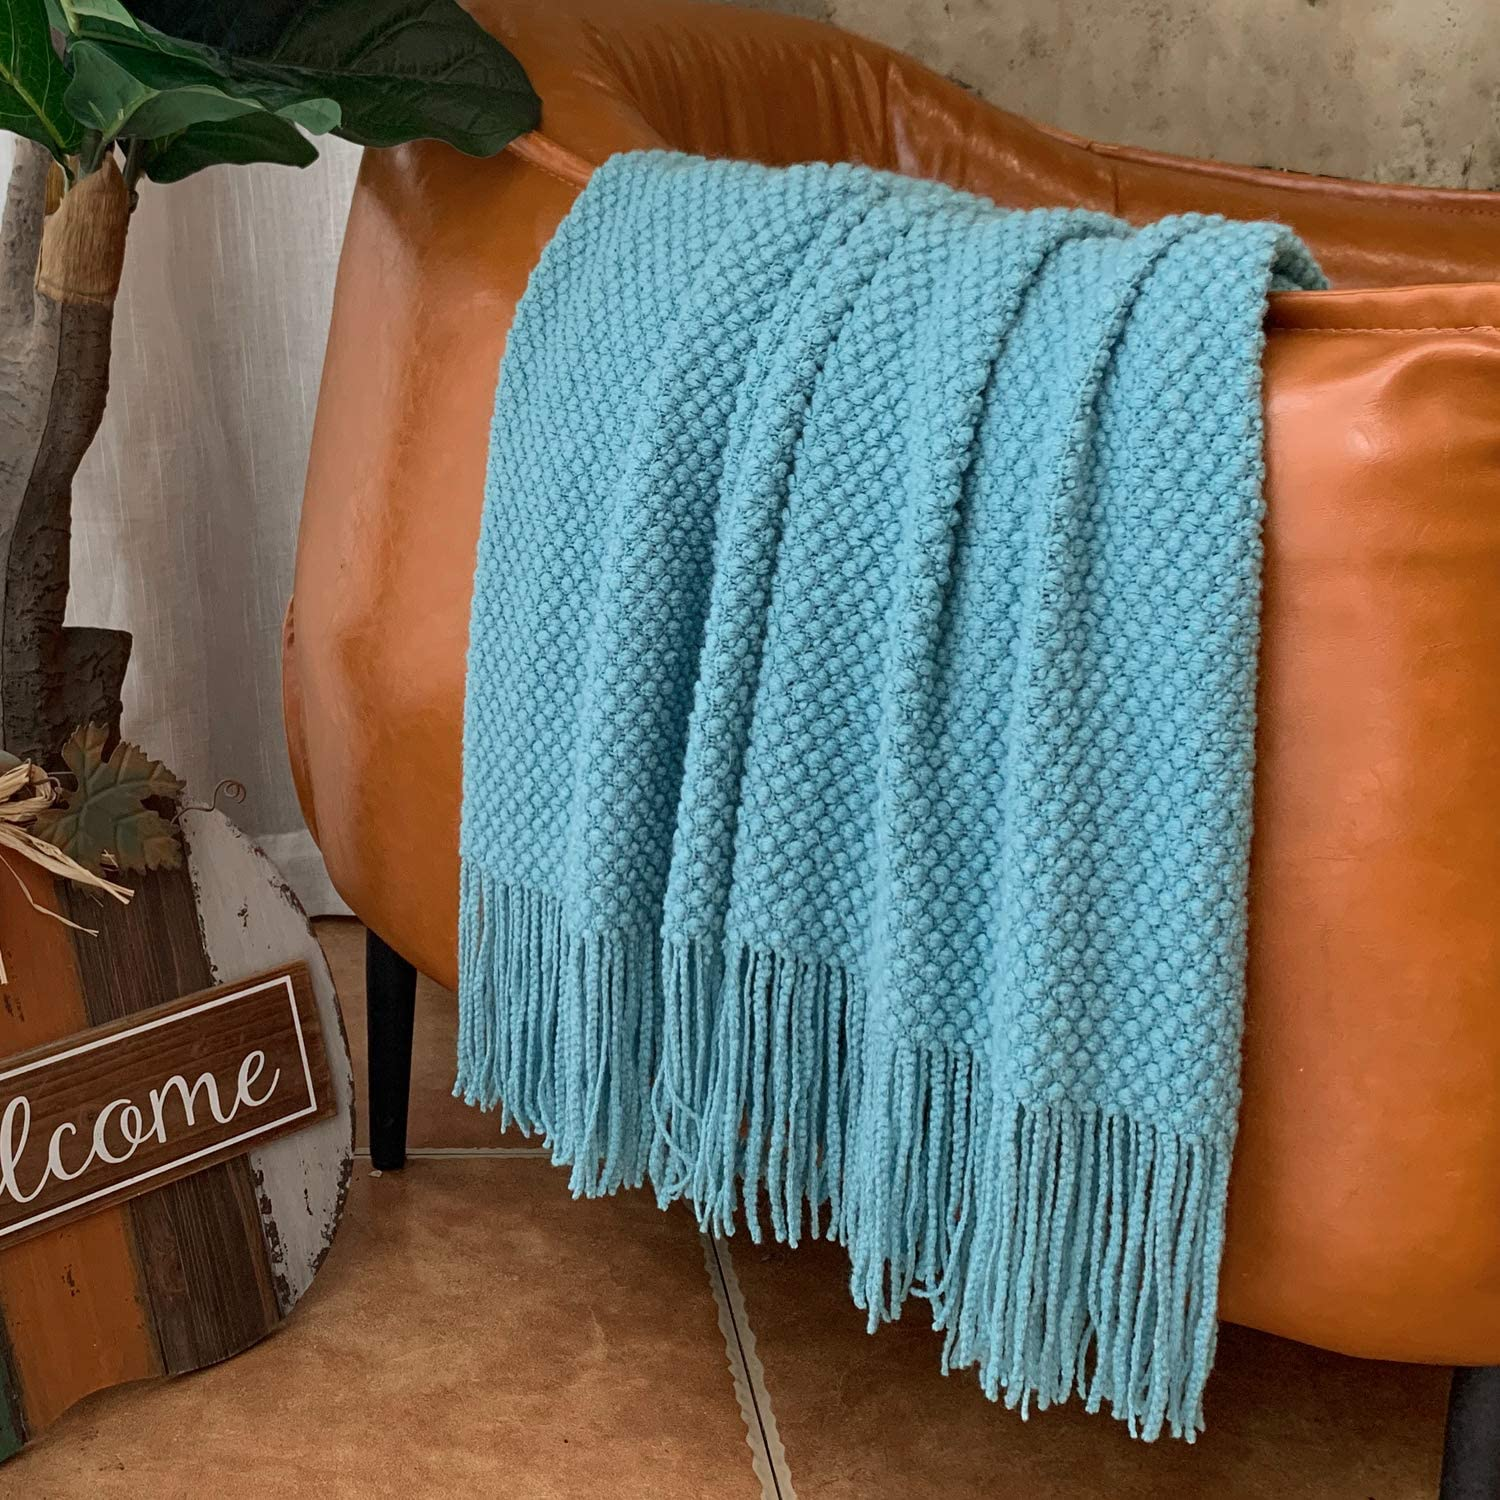 LOMAO Knitted Throw Blanket with Tassels